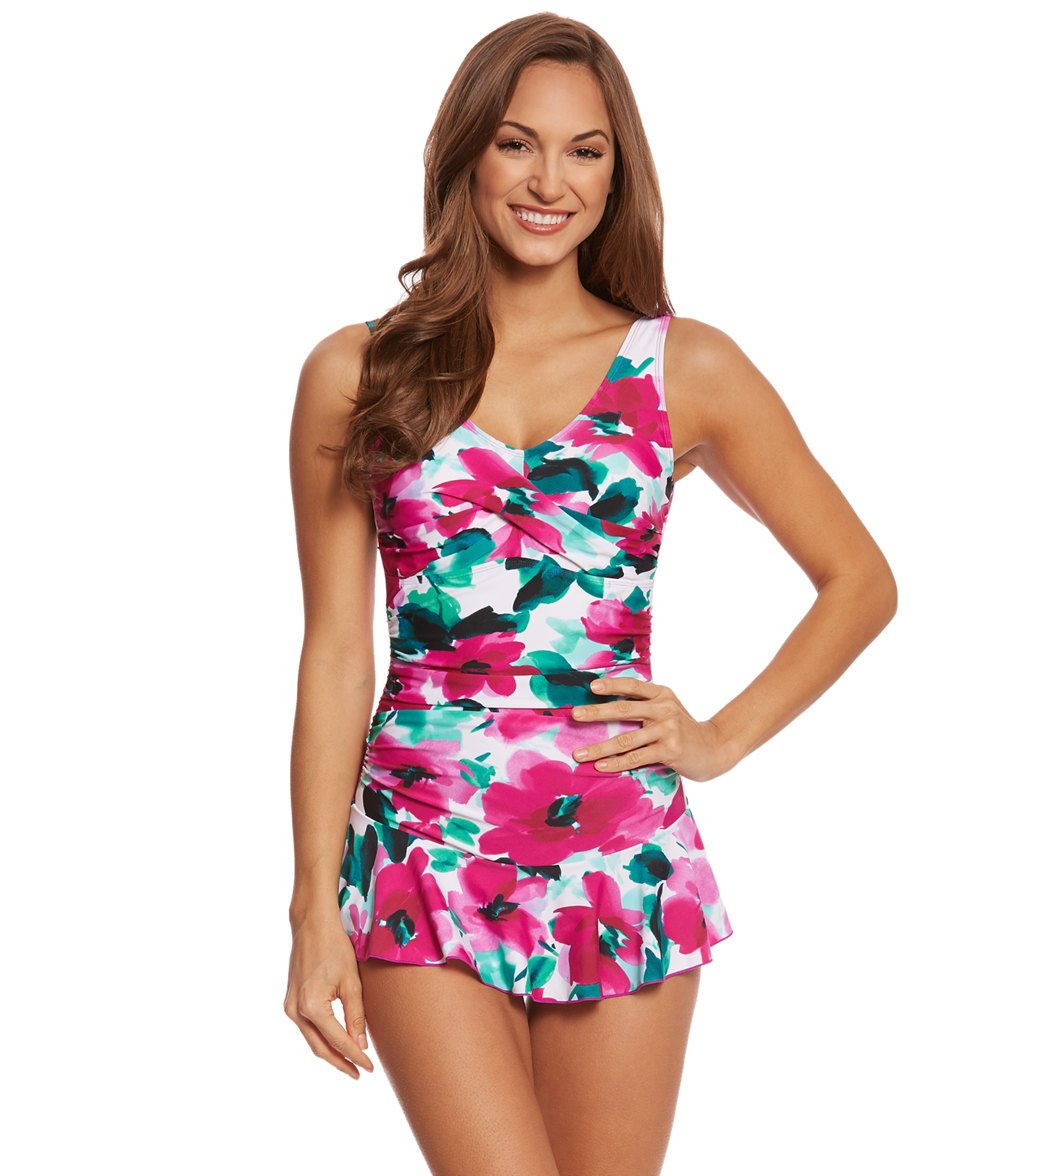 299a5ed0759 Ceeb Hibiscus Skirted One Piece Swimsuit at SwimOutlet.com - Free ...